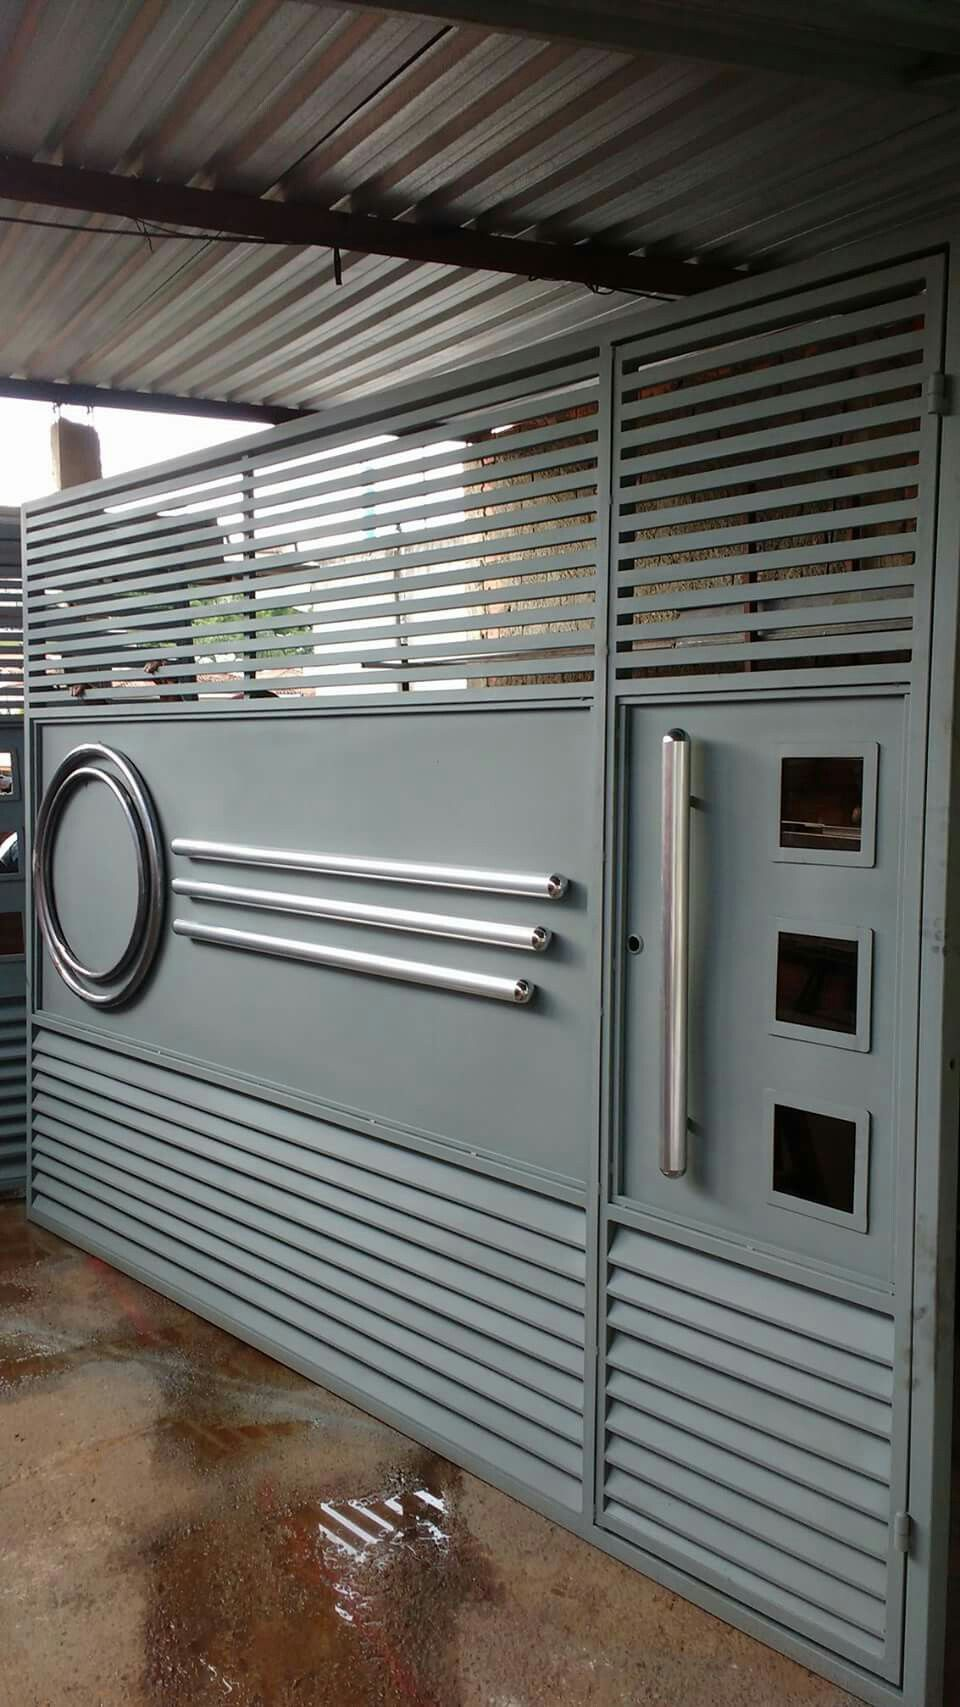 Port o com detalhes kitchen trends steel gate design - Sliding main gate design for home ...